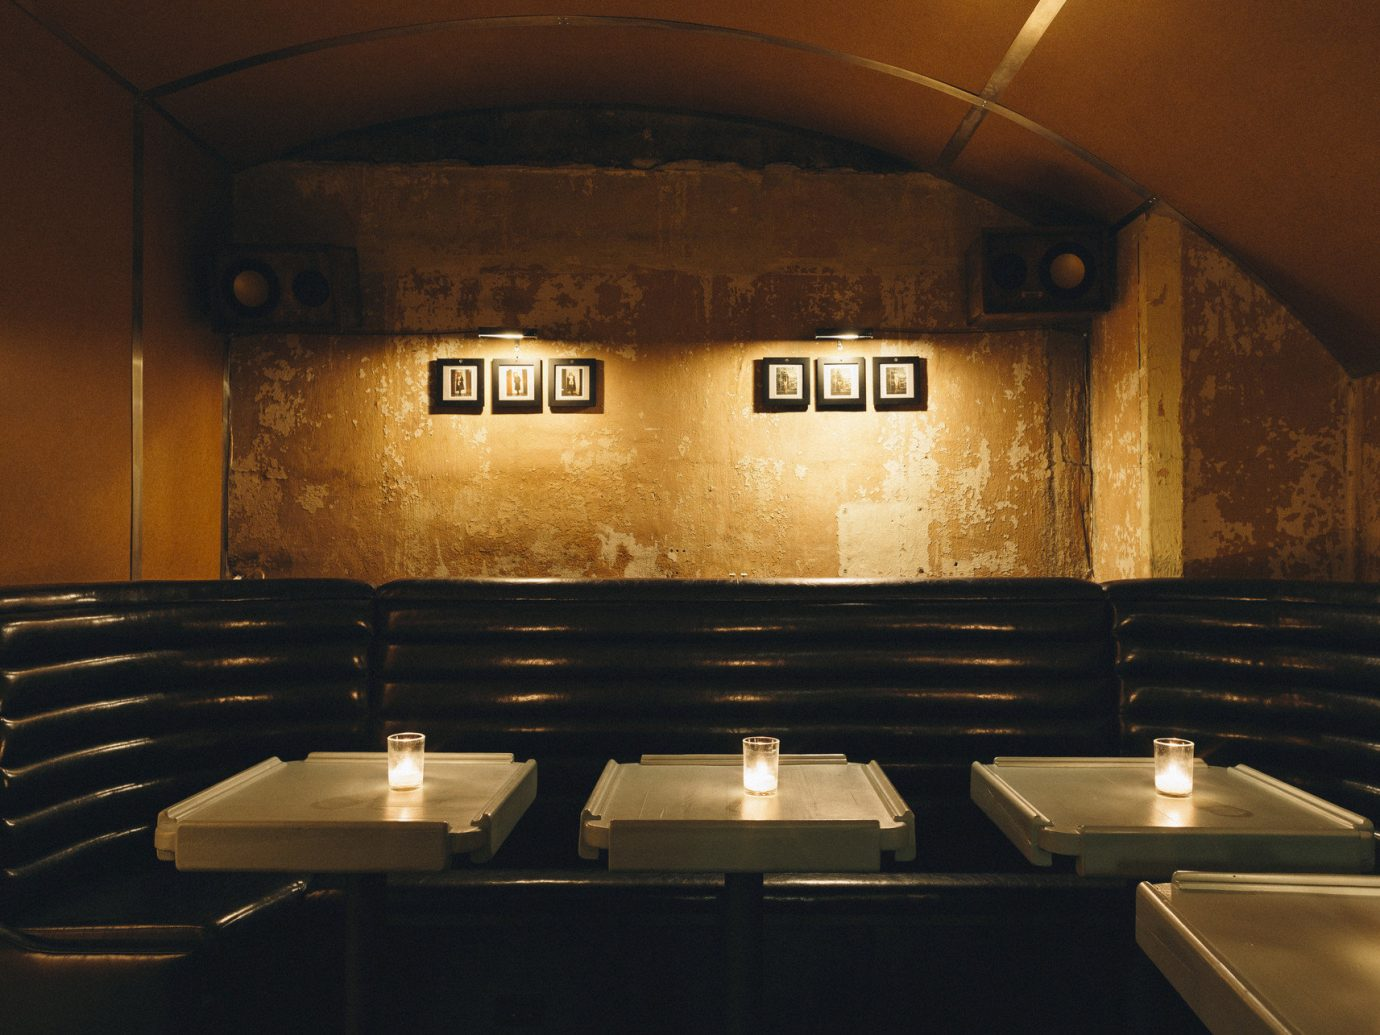 ambient lighting Bar charming cozy dark dim Food + Drink Hip industrial interior moody quaint Rustic Style + Design tables trendy Trip Ideas Weekend Getaways indoor wall man made object ceiling room restaurant lighting auditorium interior design counter